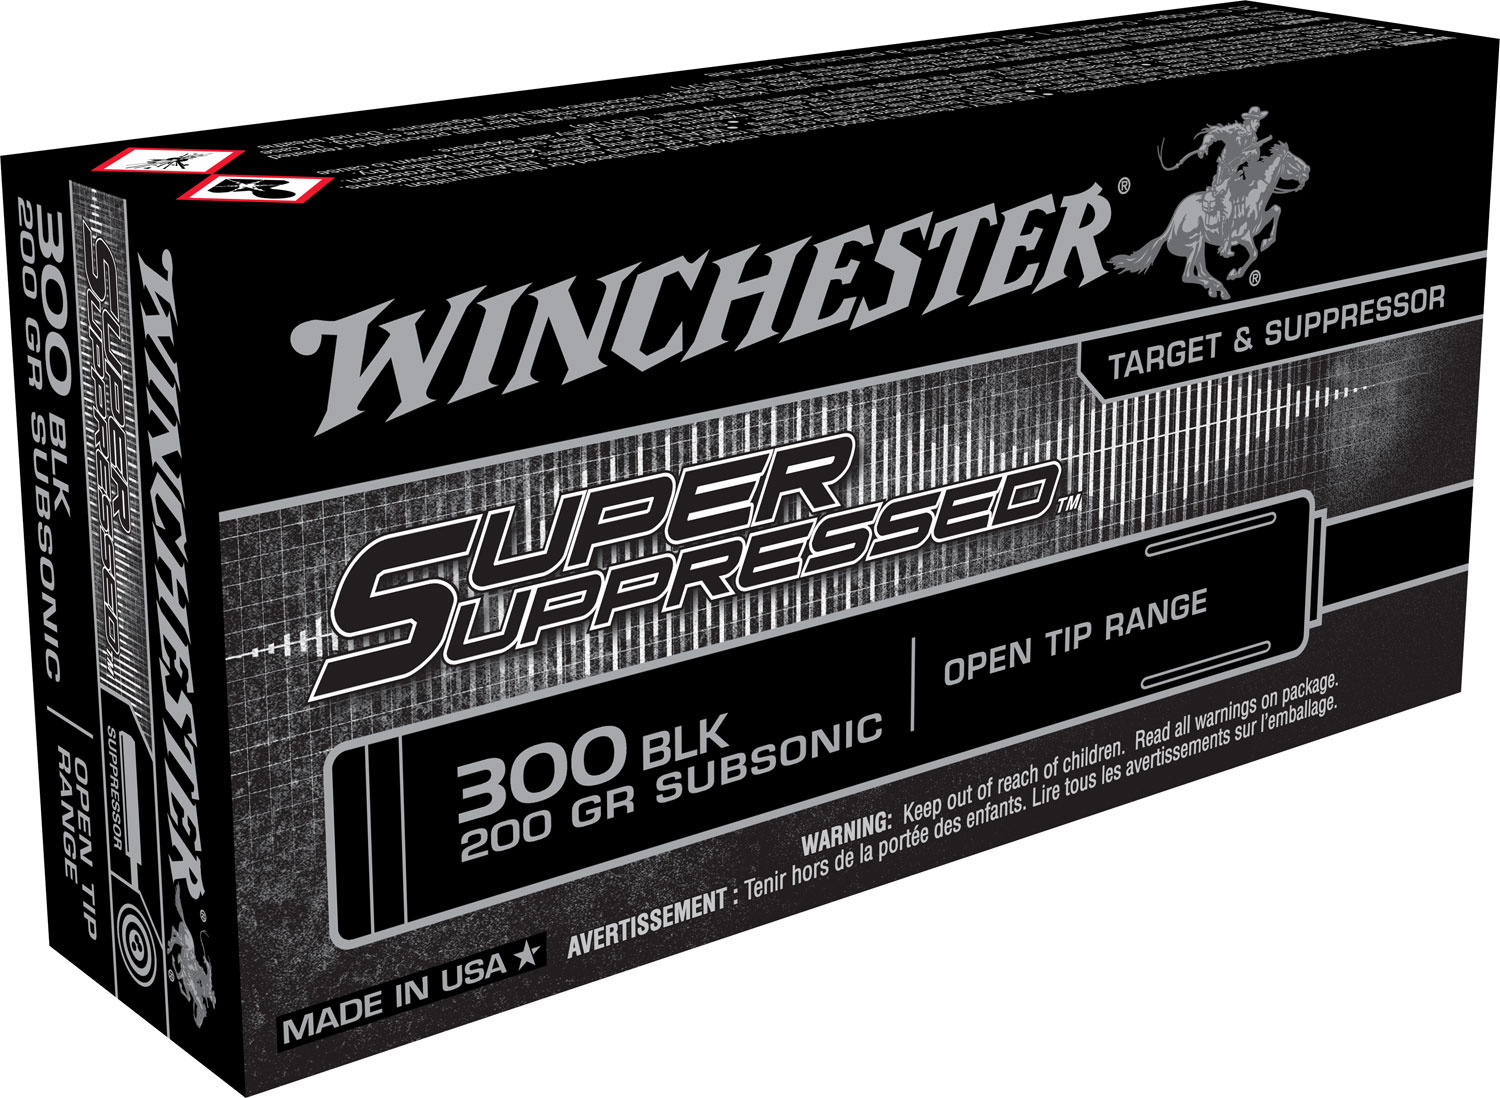 Winchester Ammo SUP300BLK Super Suppressed 300 AAC Blackout/Whisper (7.62x35mm) 200 GR Full Metal Jacket OT 20 Bx/ 10 Cs